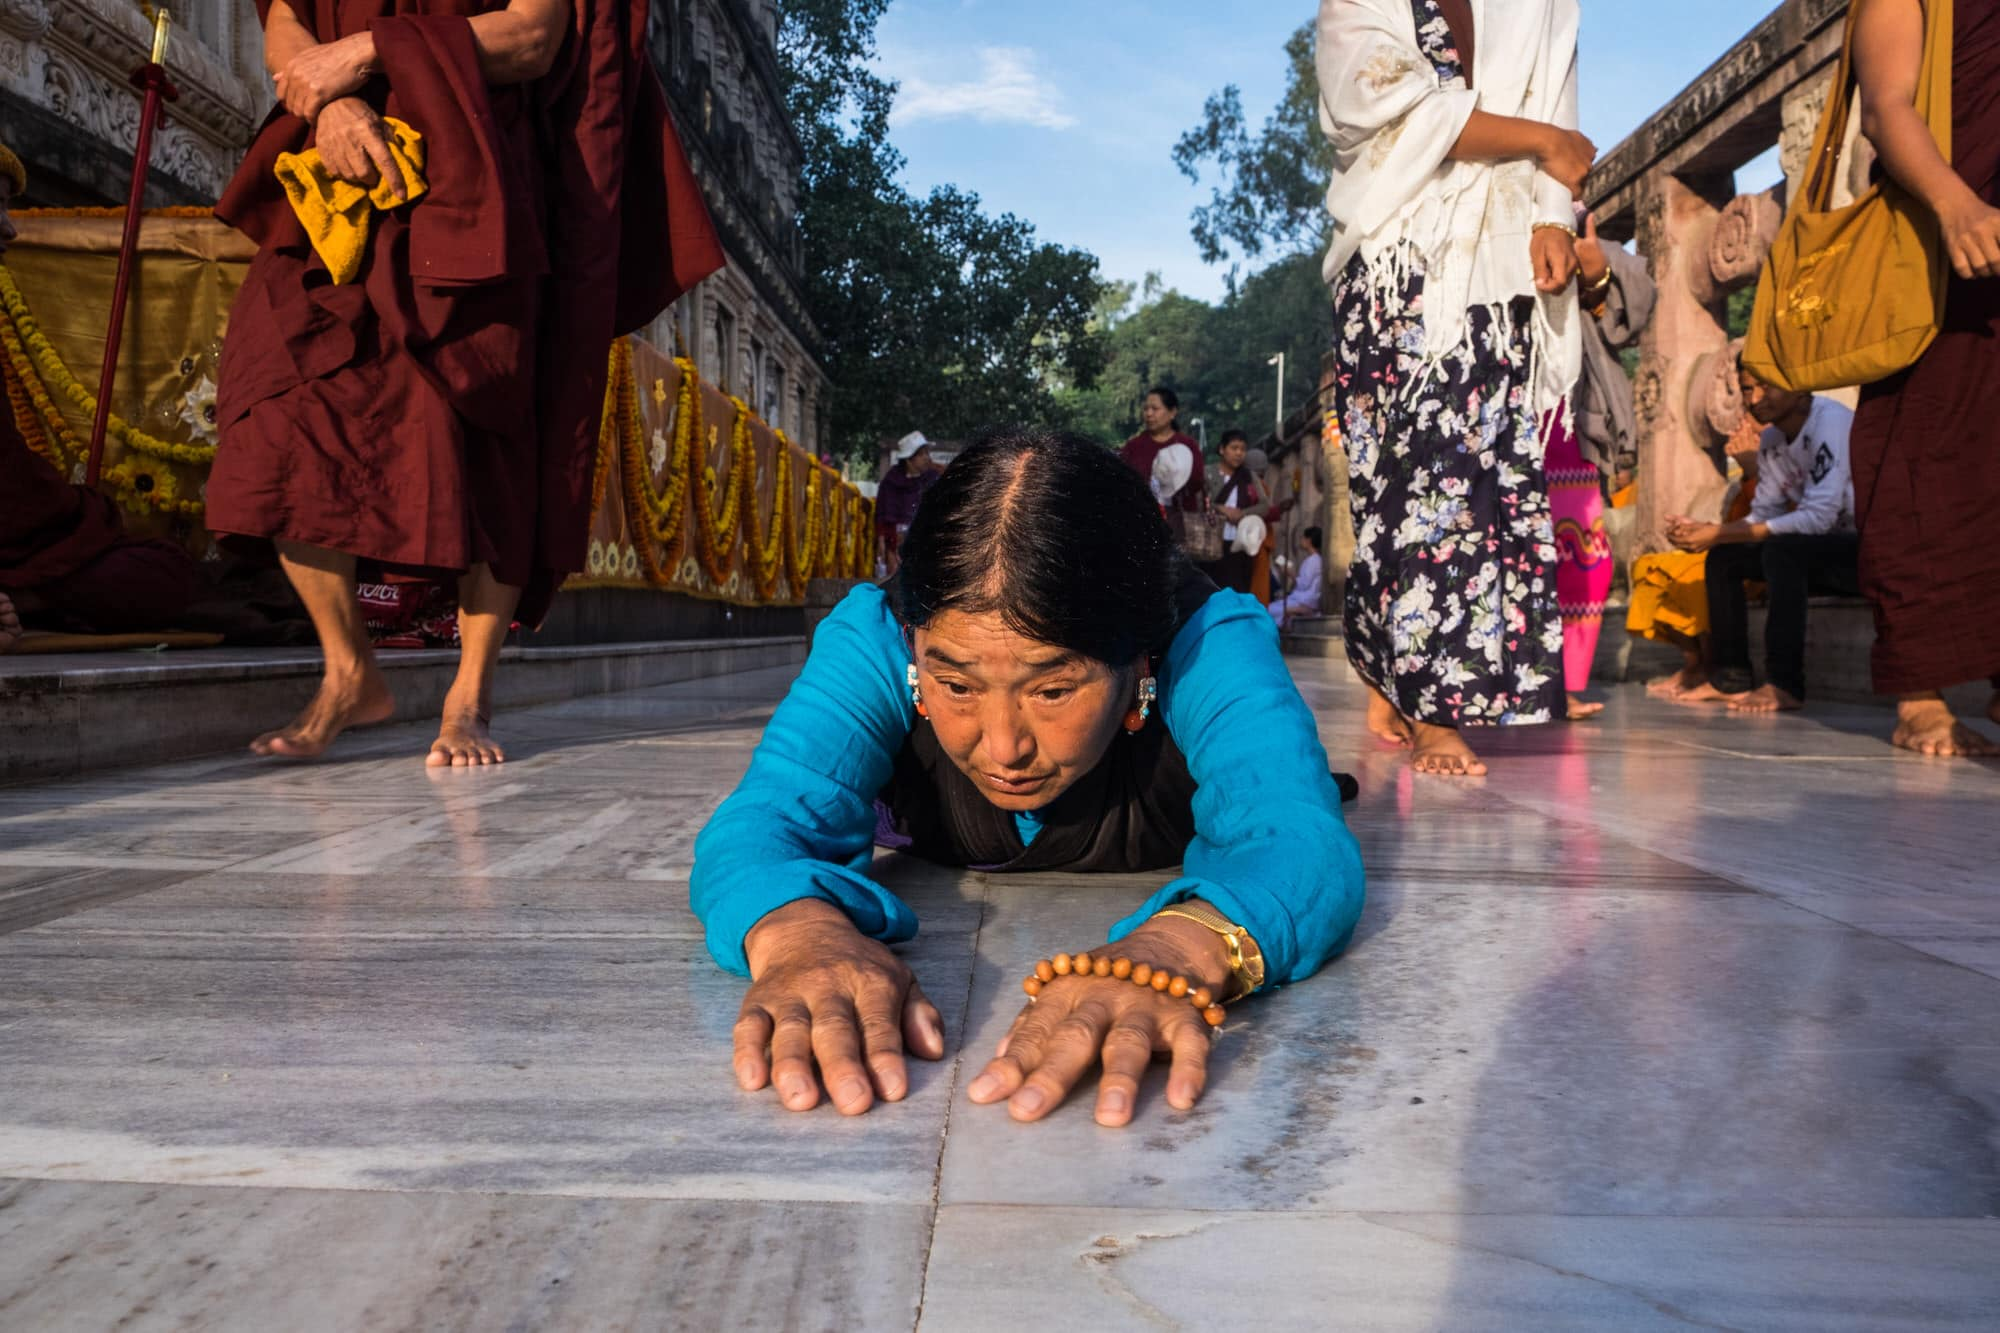 A tibetan lady undertakes a parikrama of the Mahabodhi temple